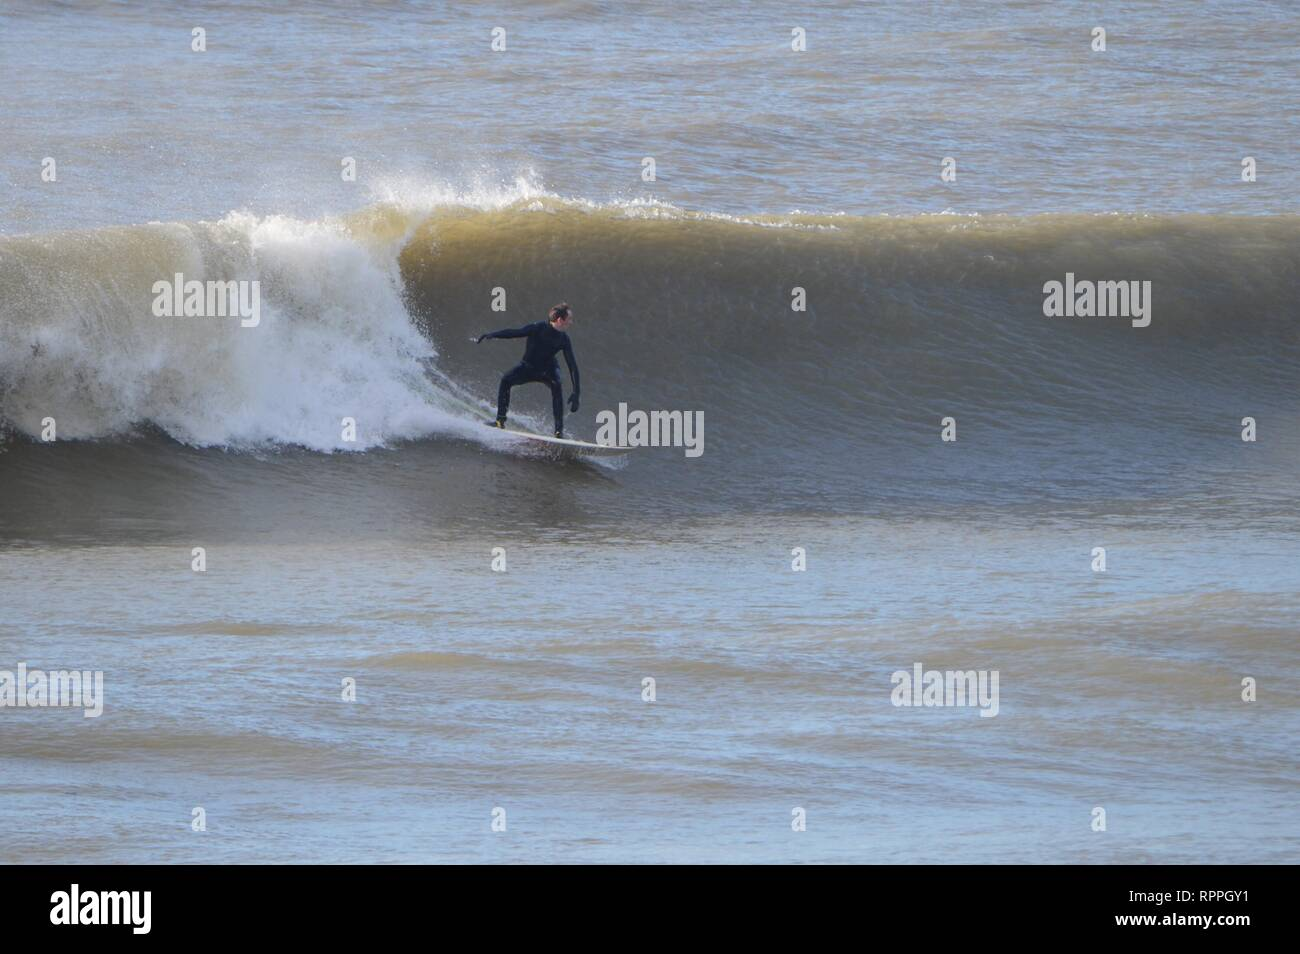 Aberystwyth Wales UK. Friday 22 Feb 2019 UK weather: Surfers enjoying the incredibly warm February sunshine in Aberystwyth on the west coast of Wales. The weather is forecast to remain fine for the next few days with the chance of record breaking temperatures in some places photo Credit: keith morris/Alamy Live News - Stock Image